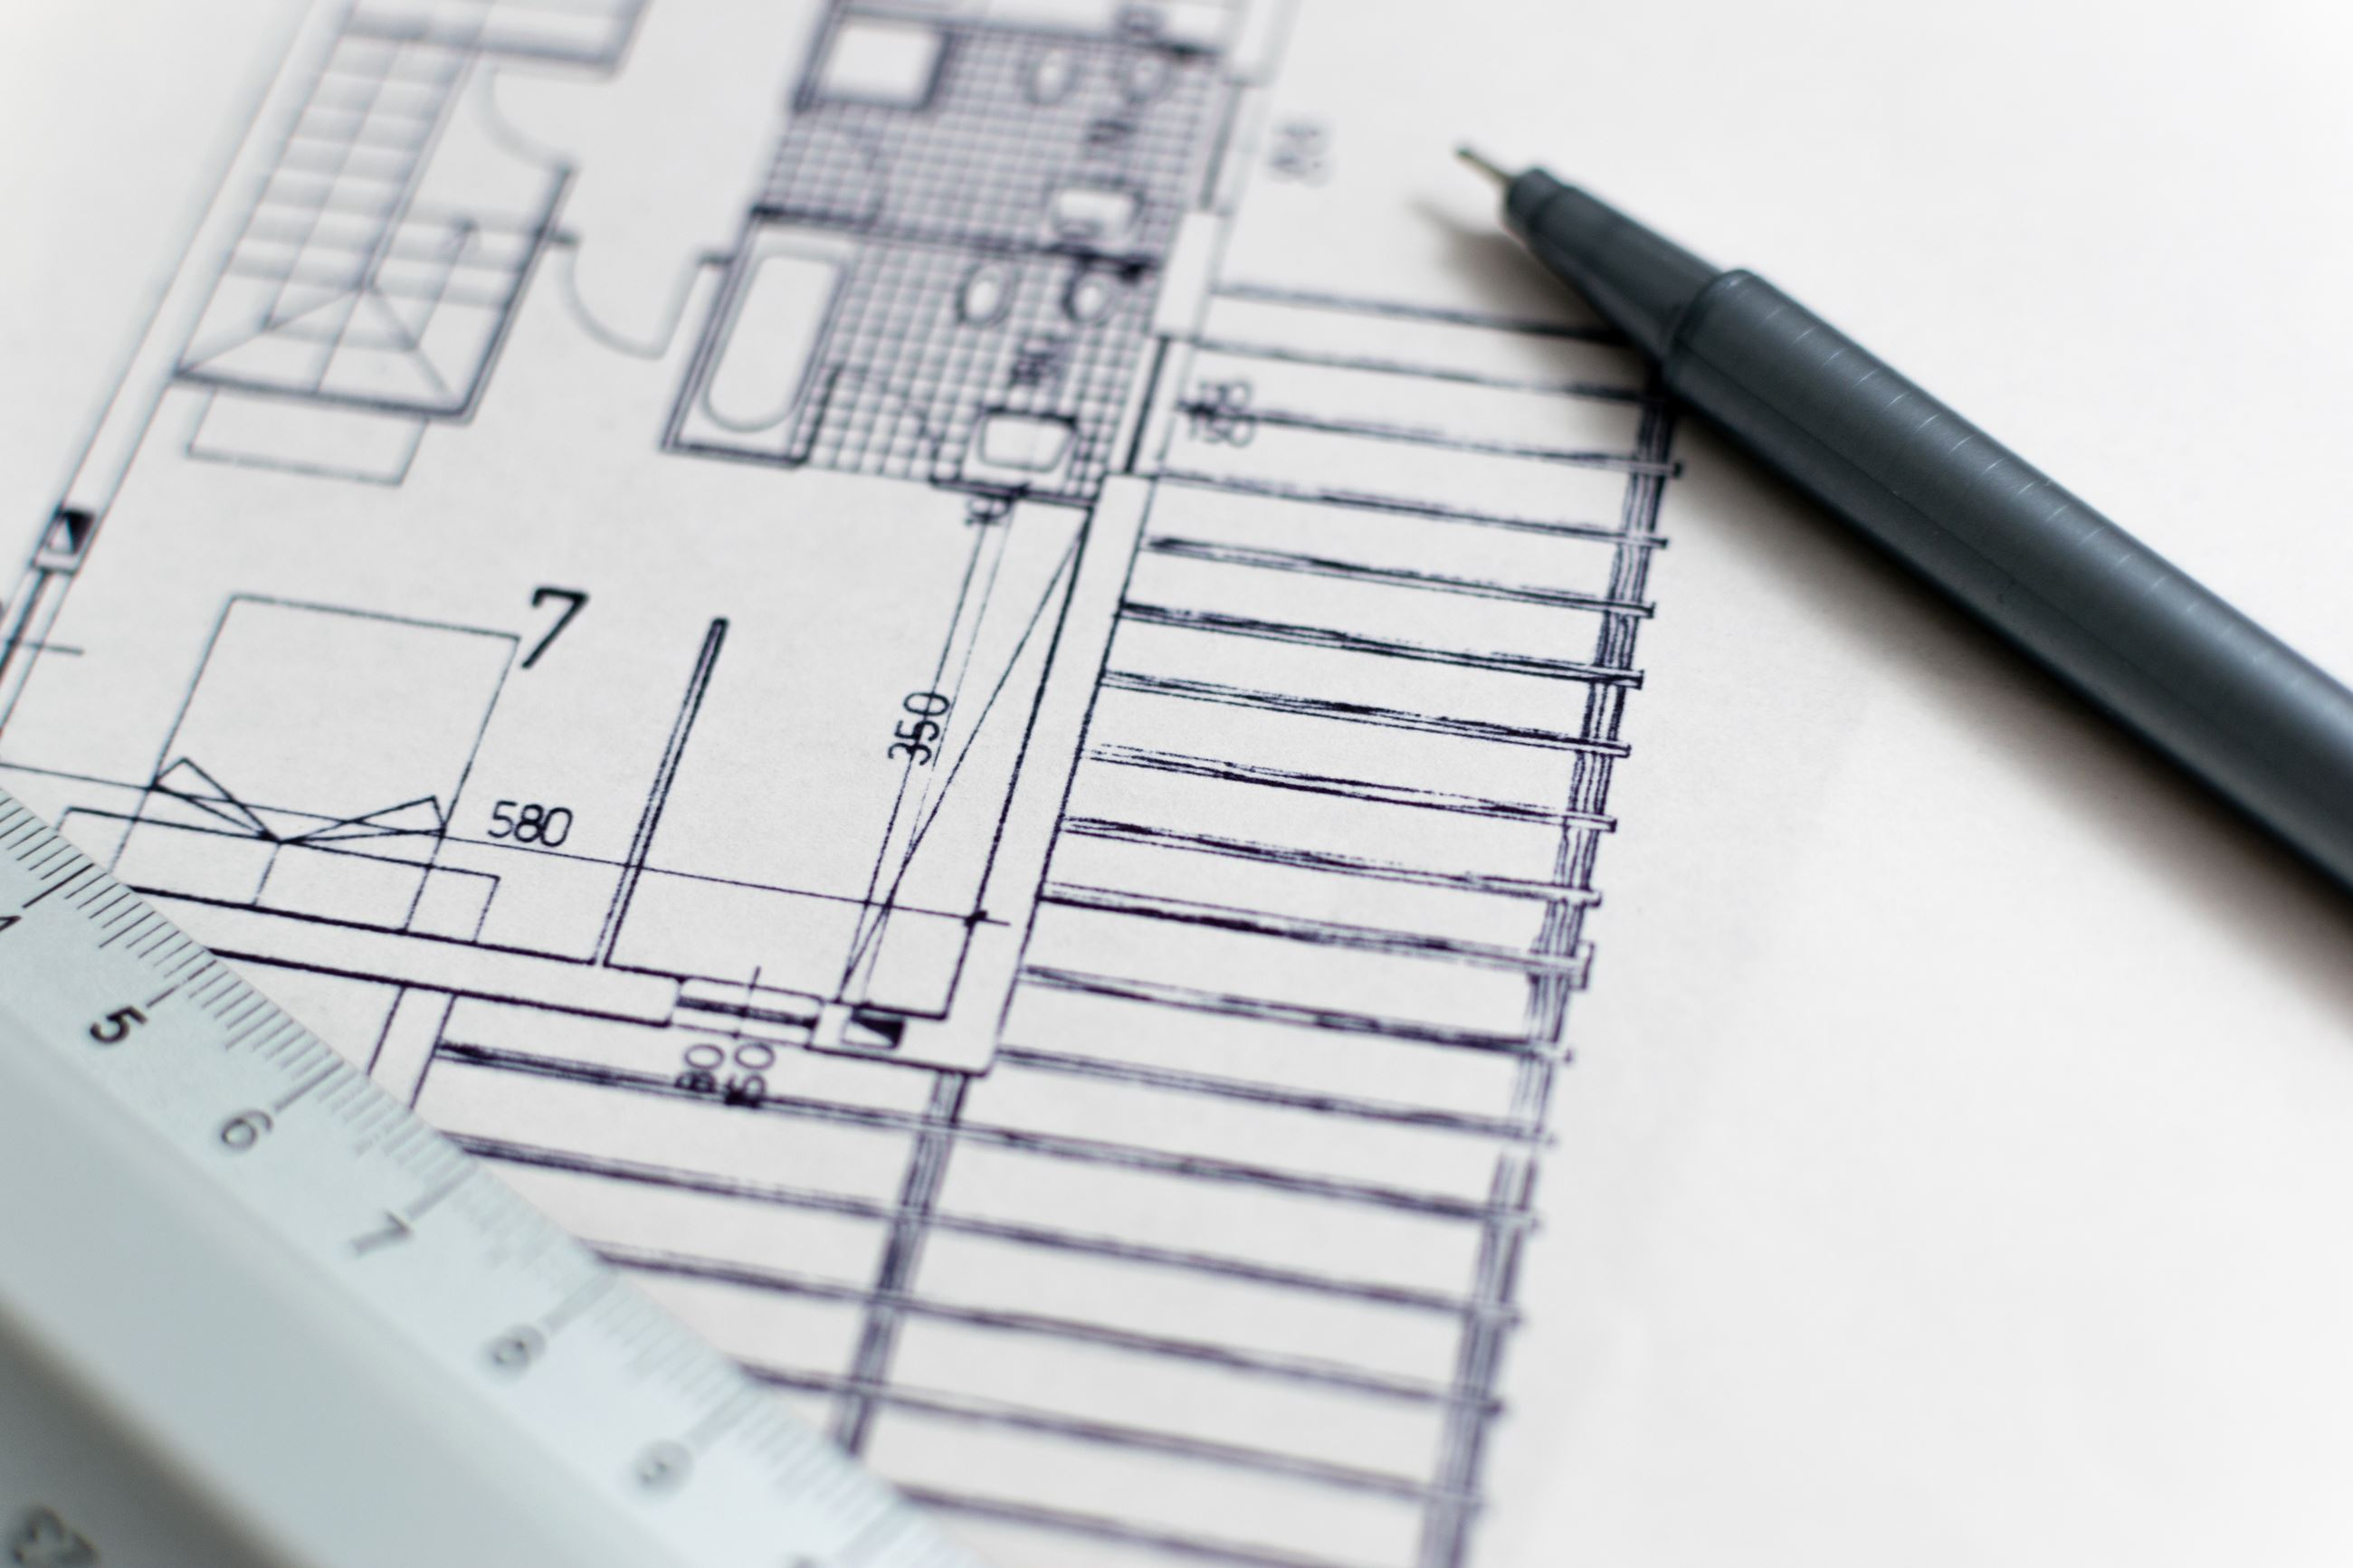 Planning department indian trail nc a blueprint and pen malvernweather Image collections